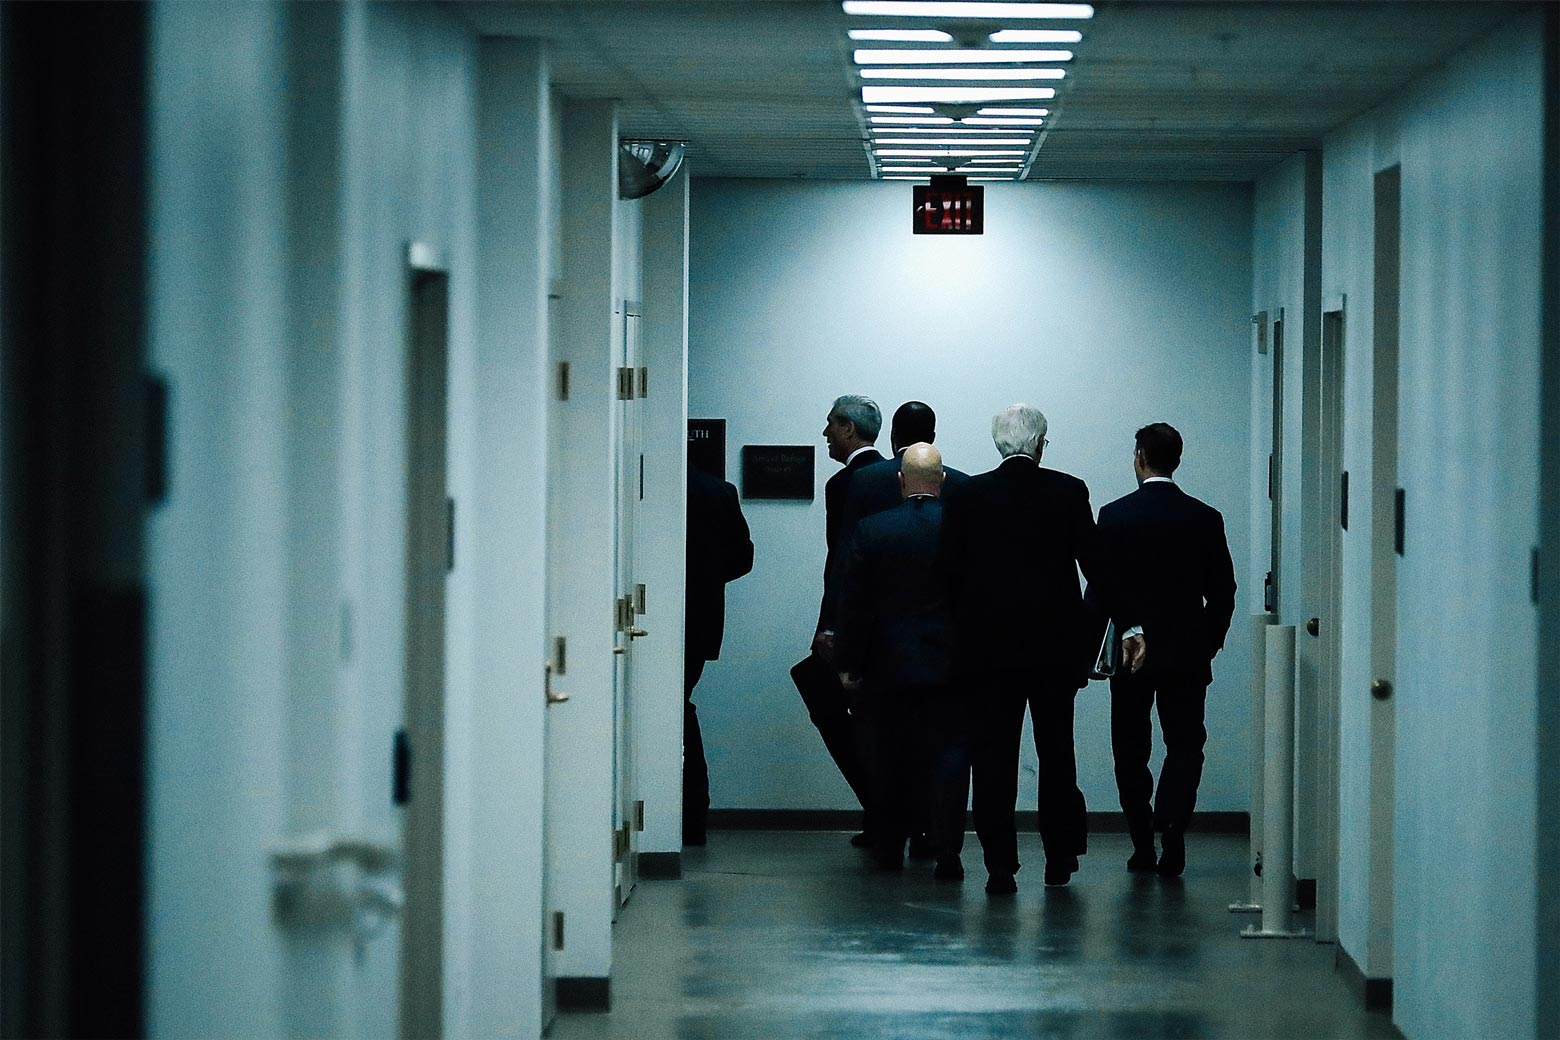 Robert Mueller disappearing into a back hallway.